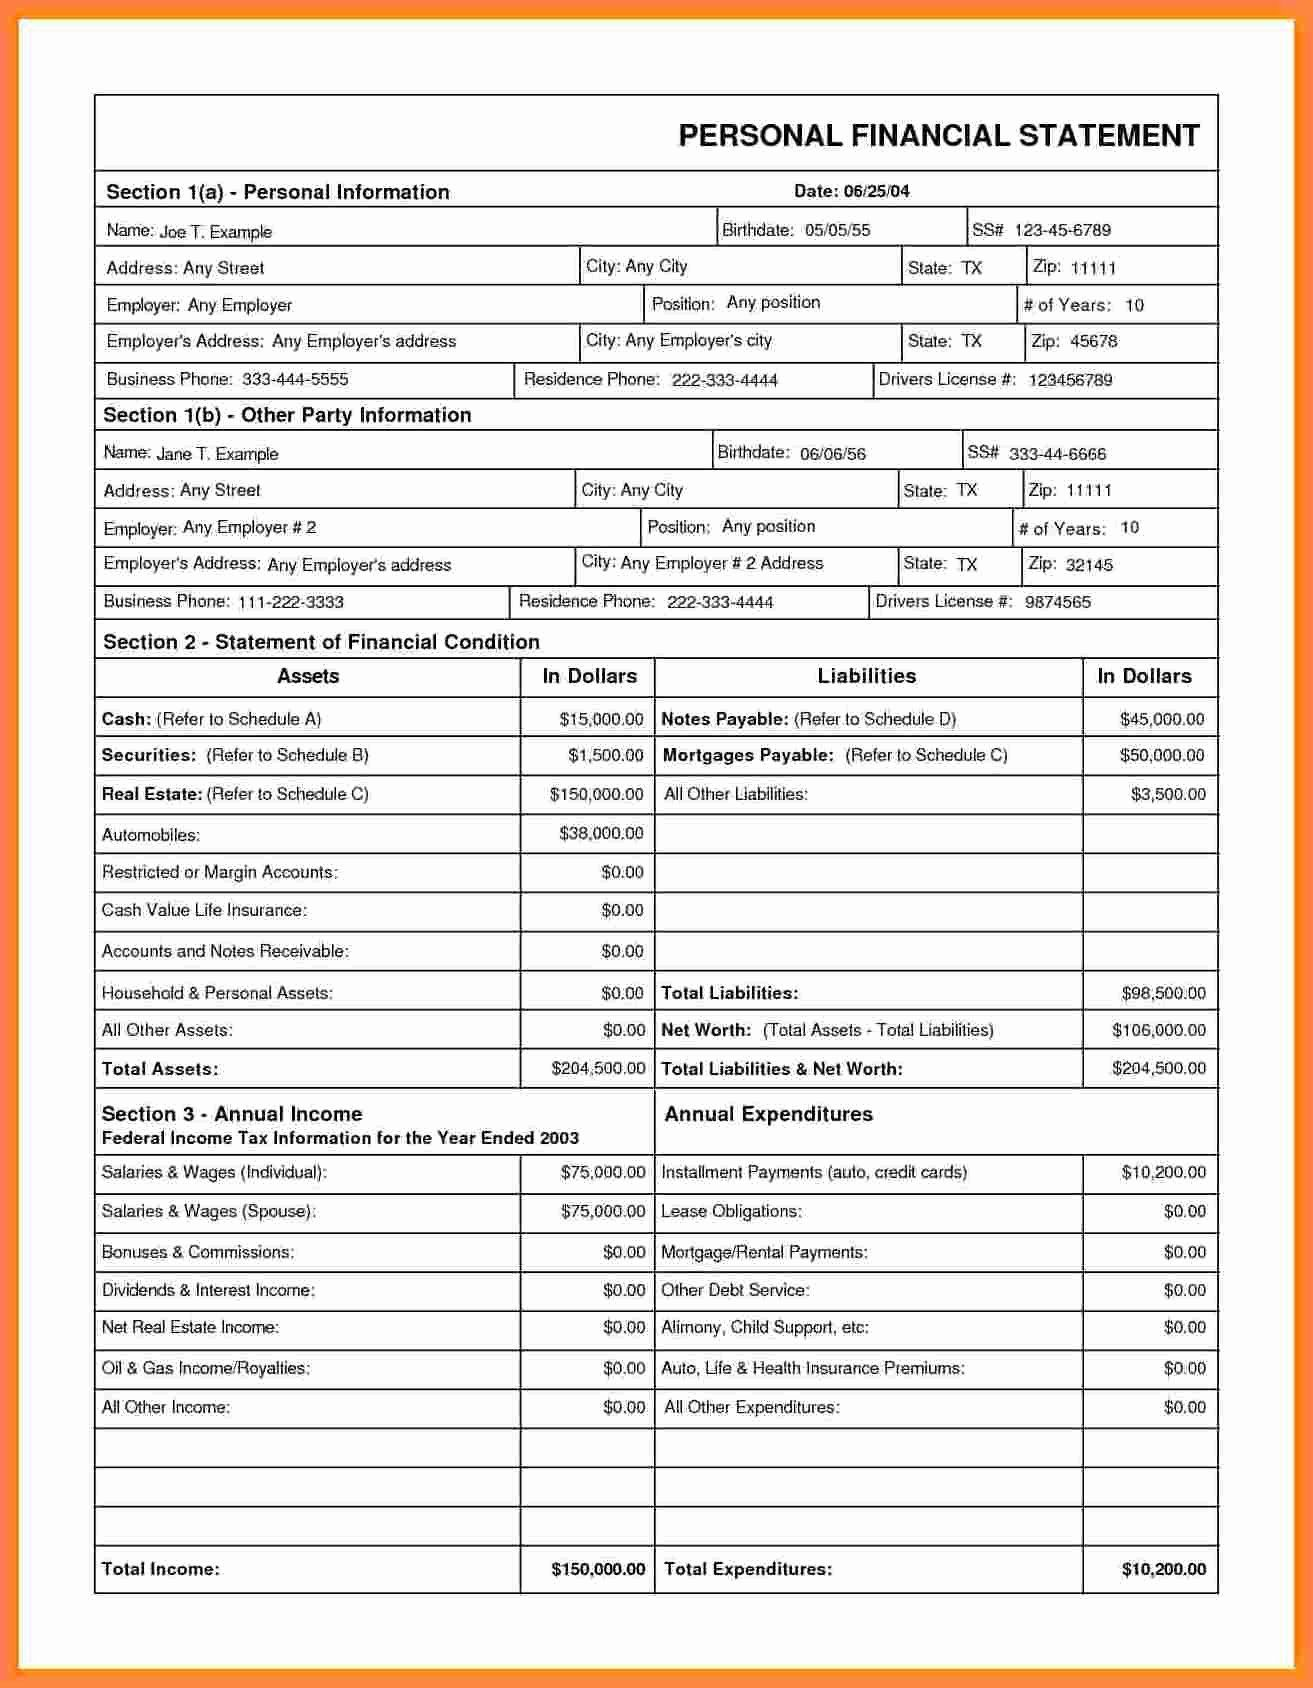 Total Compensation Statement Excel Template Free Smart With Credit Card Statement T Personal Financial Statement Credit Card Statement Balance Sheet Template